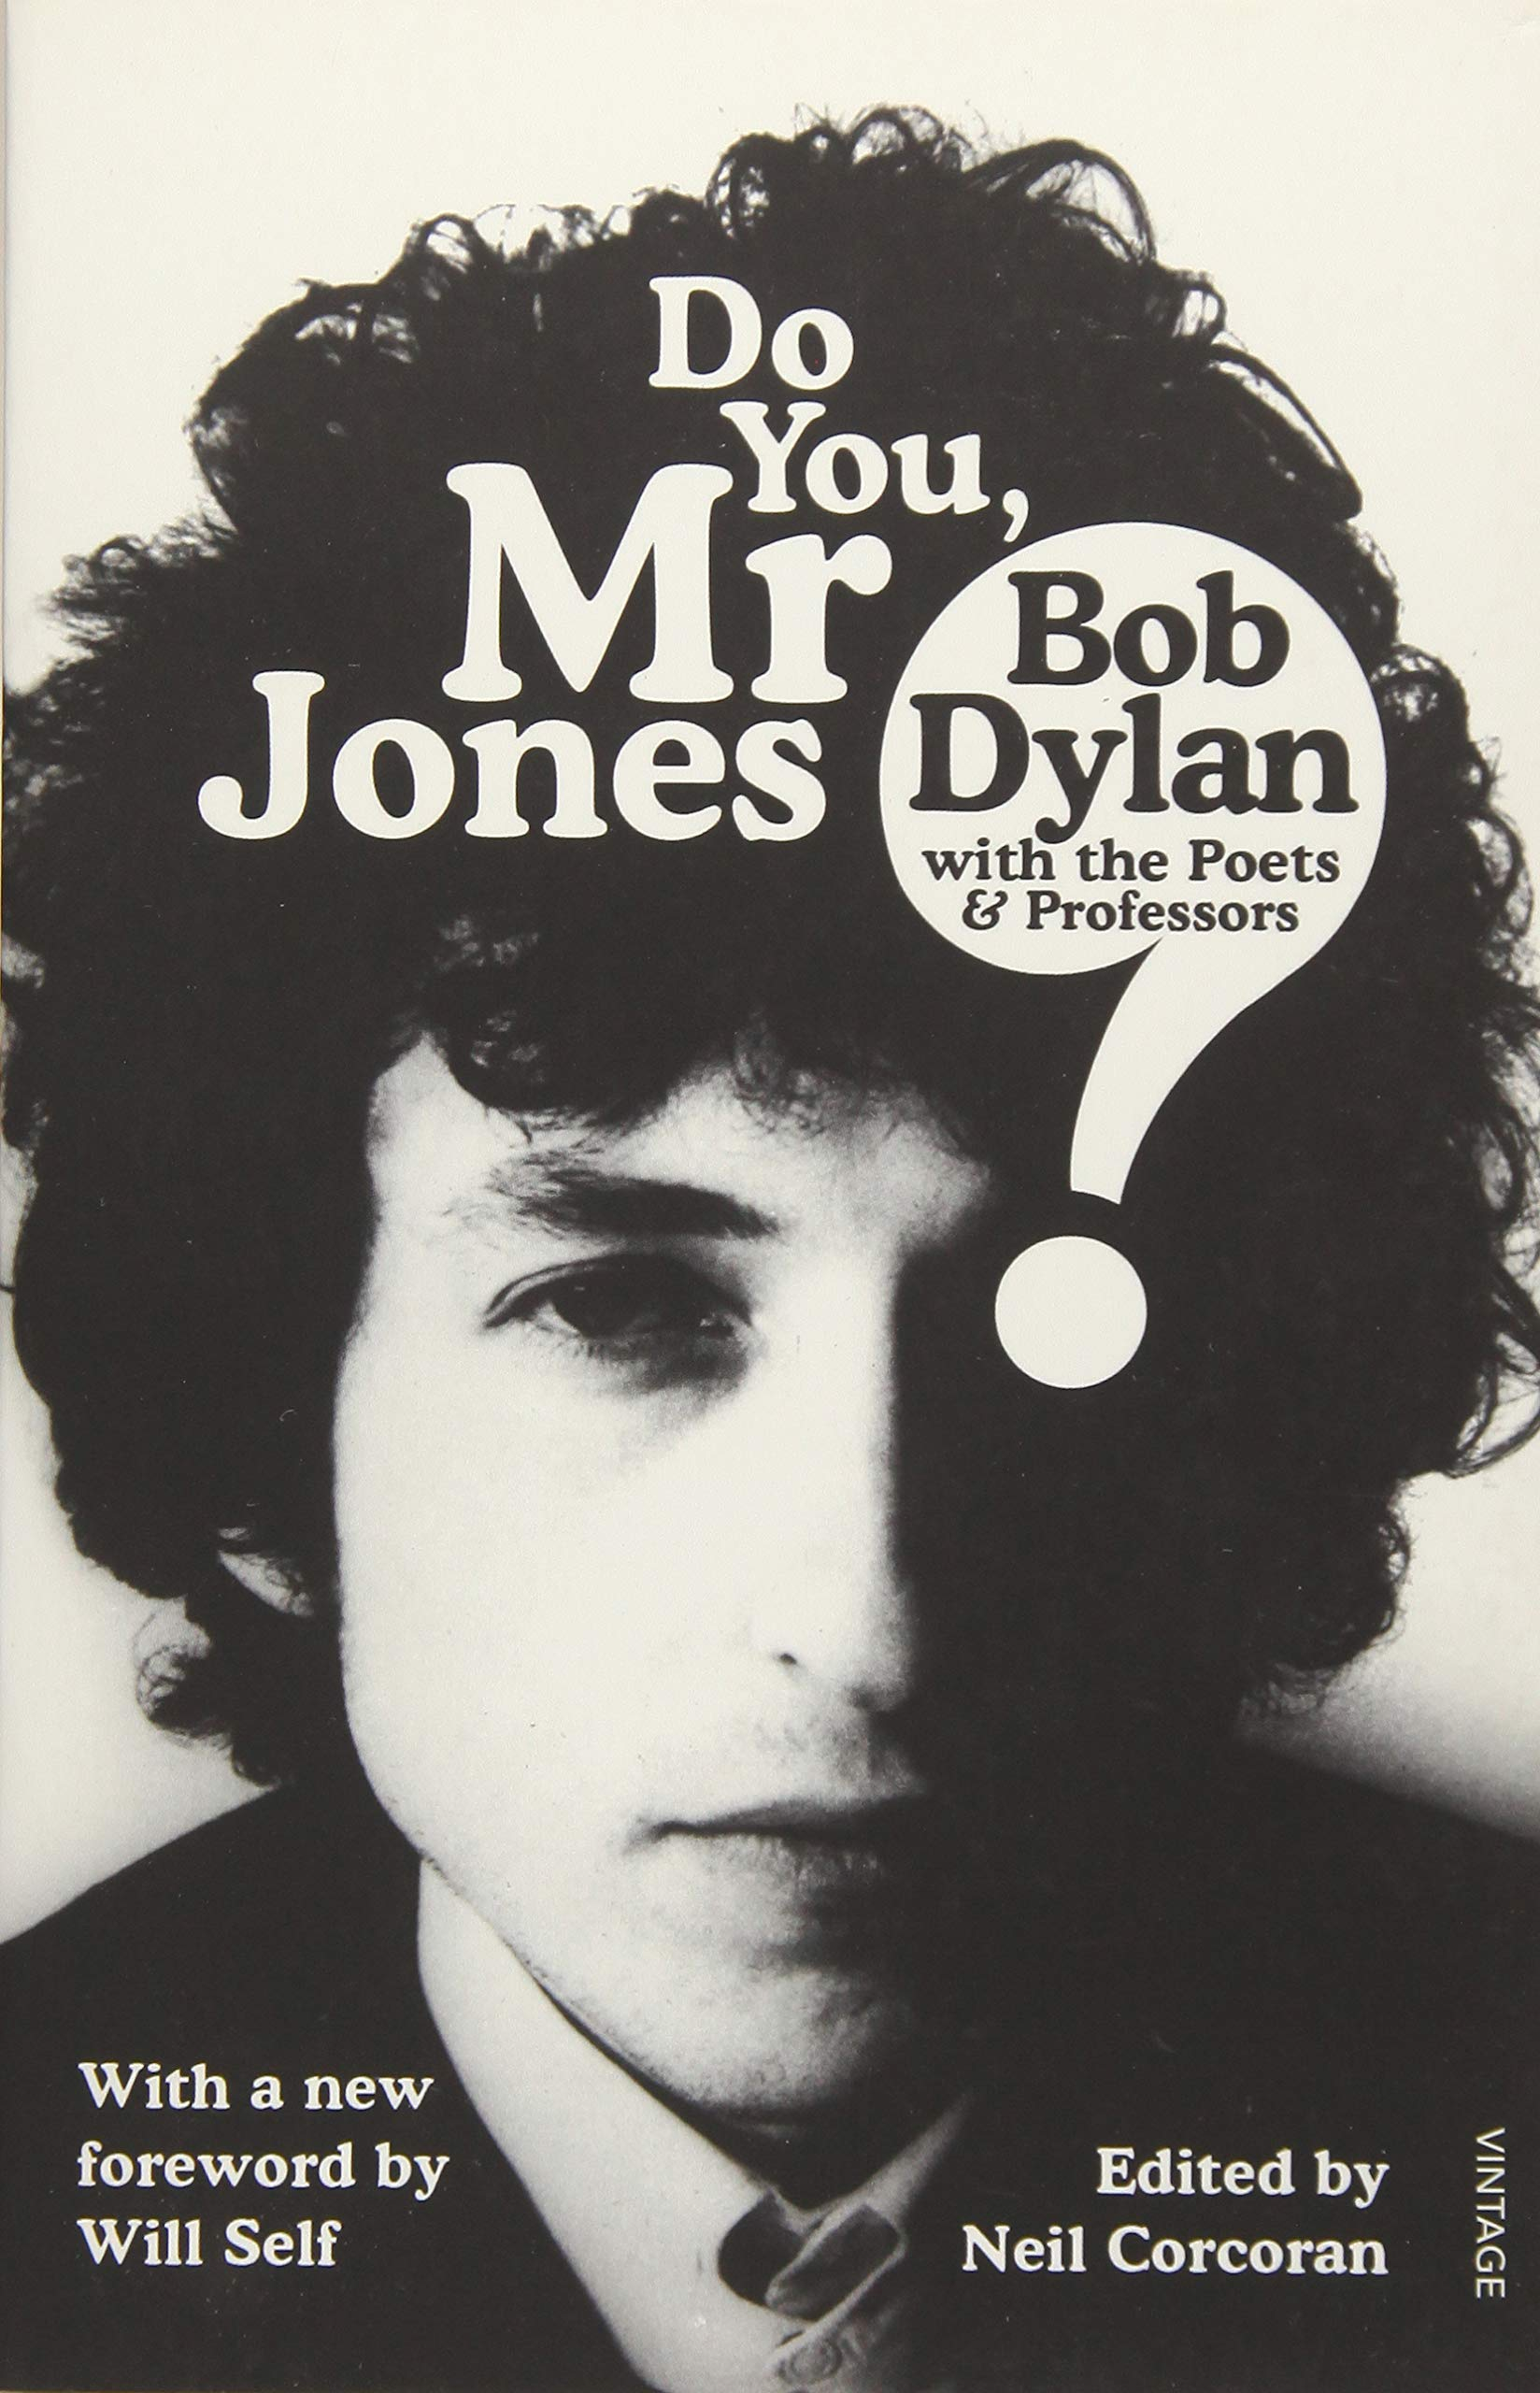 Do You Mr Jones?: Bob Dylan with the Poets & Professors